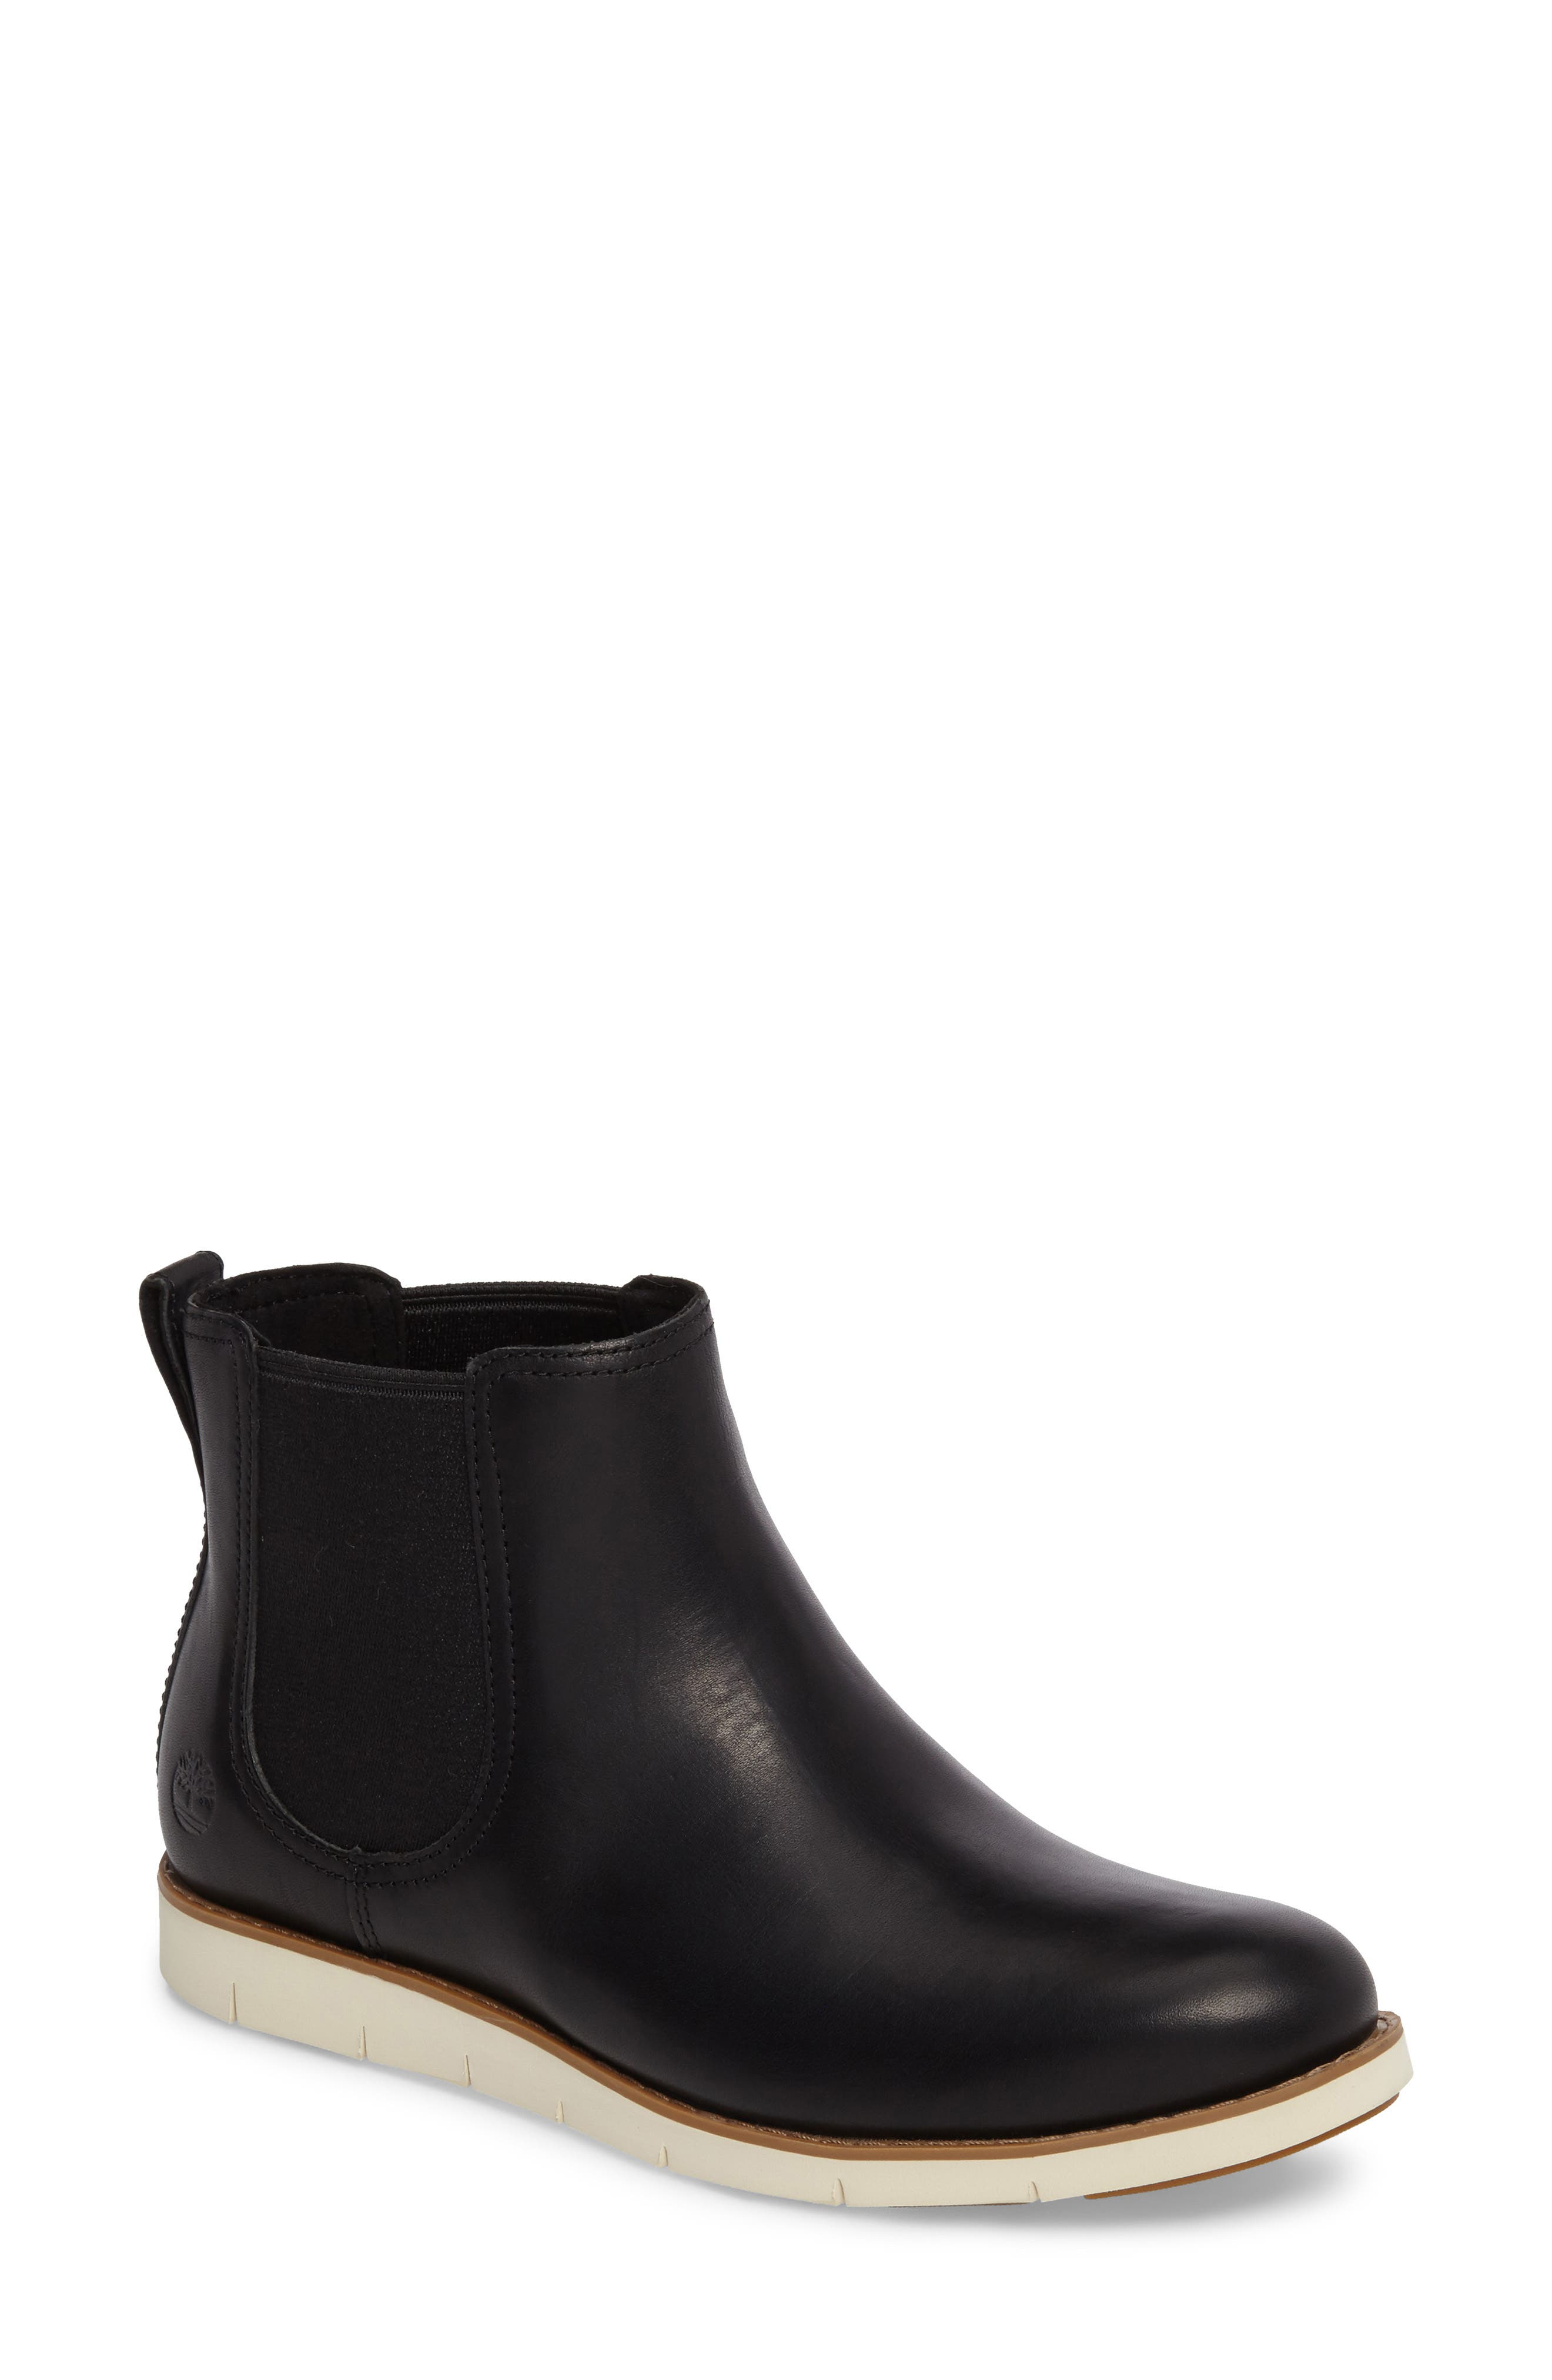 Main Image - Timberland Lakeville Chelsea Boot (Women)